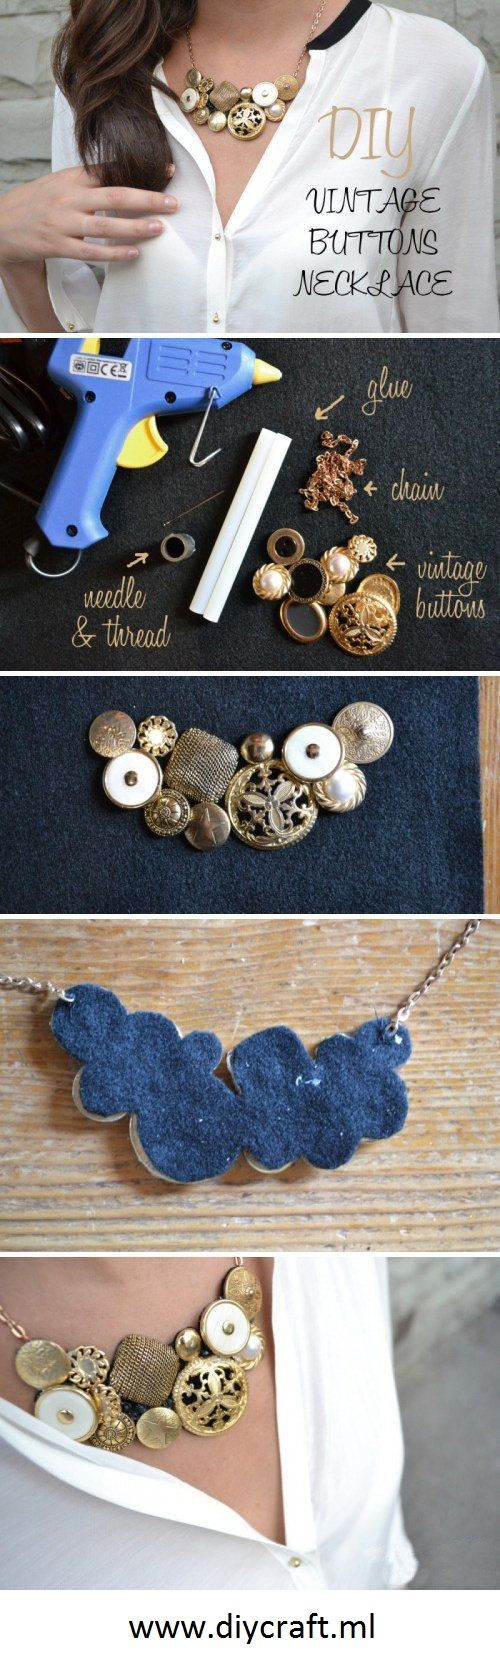 11 Easy DIY Buttons Jewelry Projects - Making Jewelry from Buttons